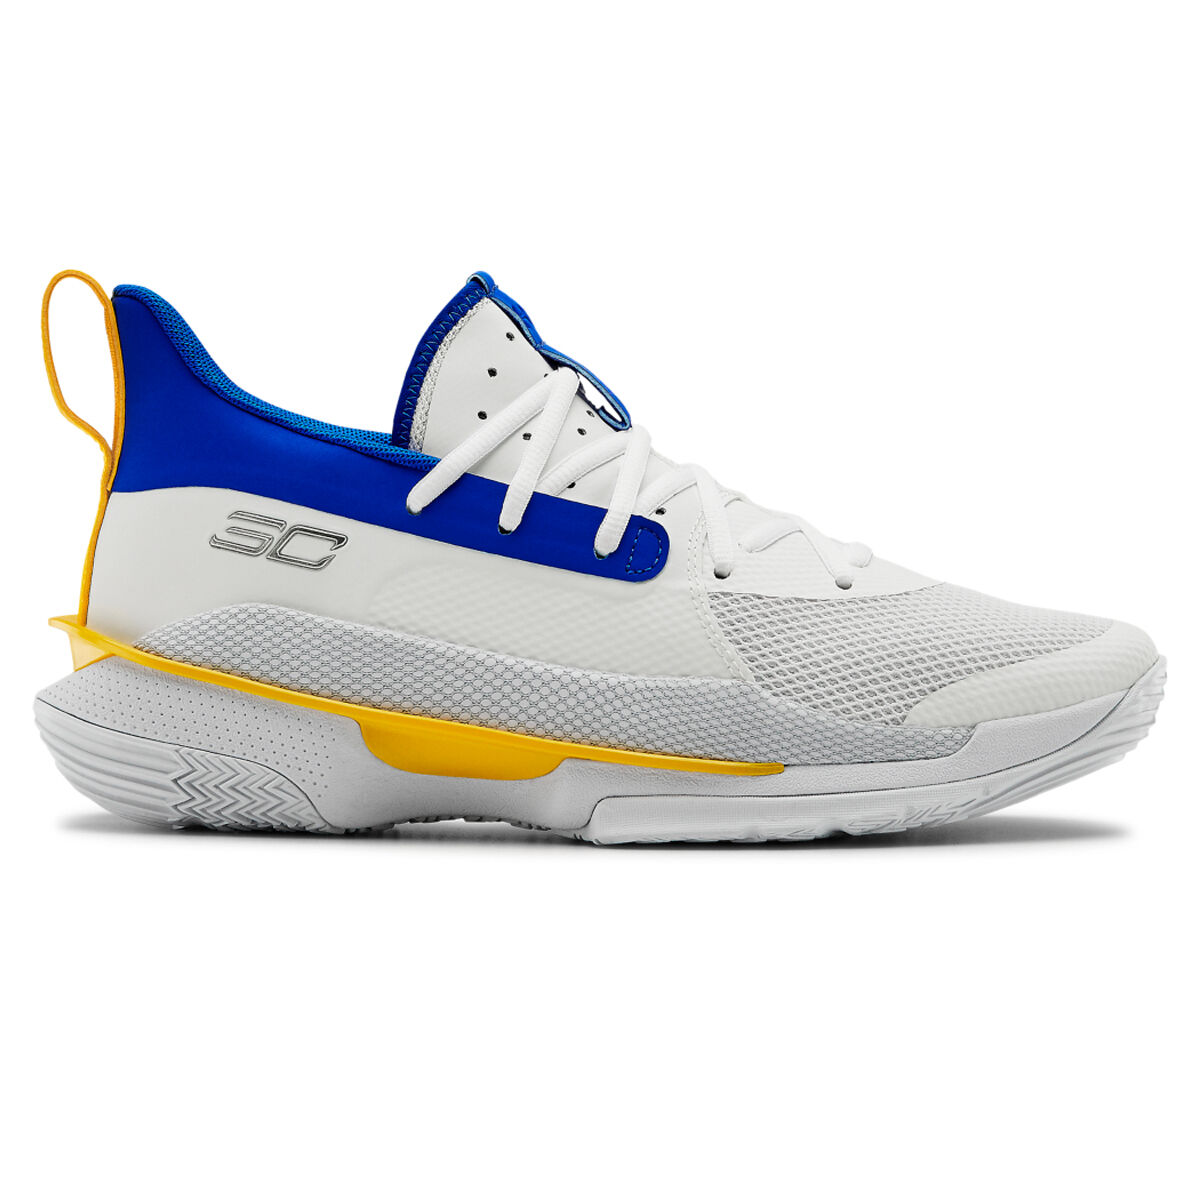 Under Armour Curry 7 Mens Basketball